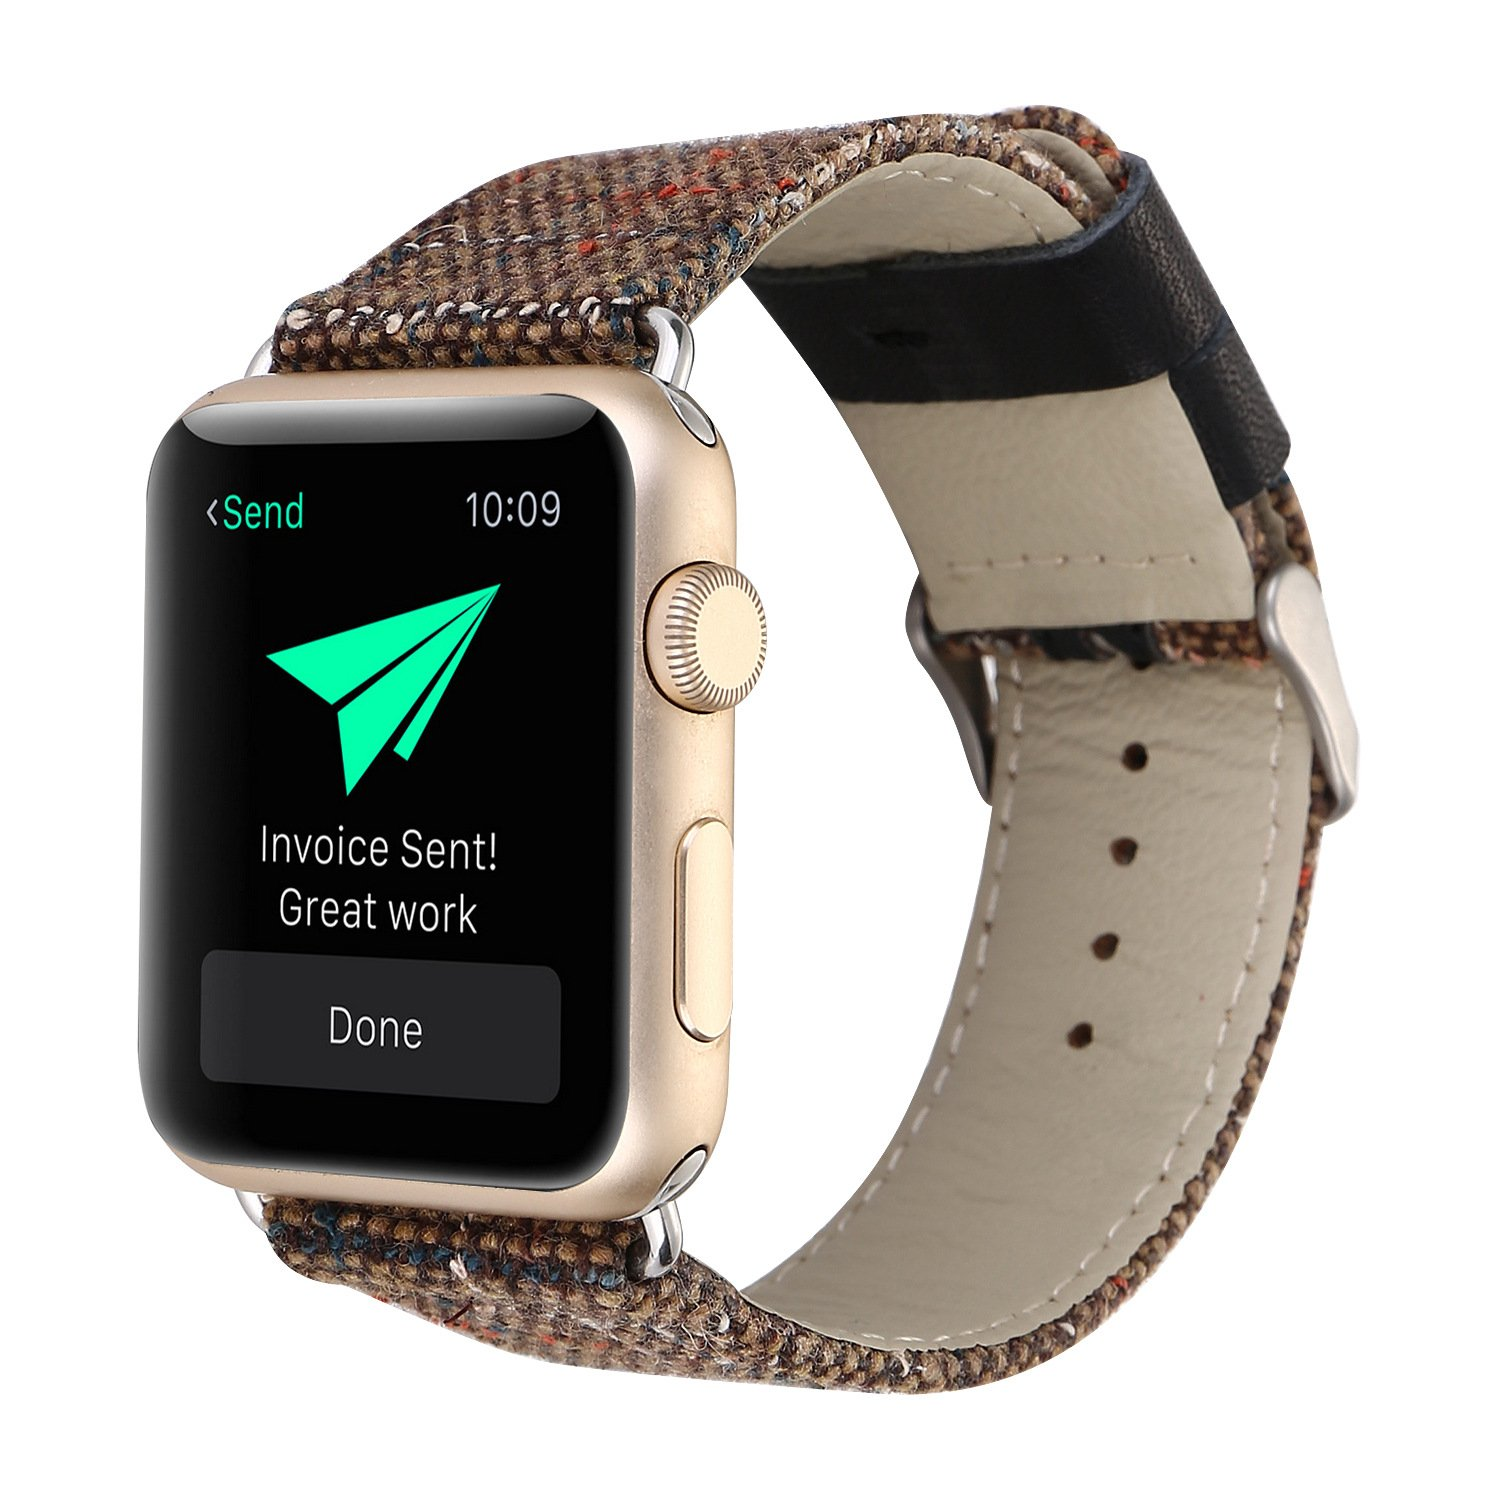 Apple watch cotton linen watch strap genuine leather strap for iwatch 1,2,3 brown 42mm